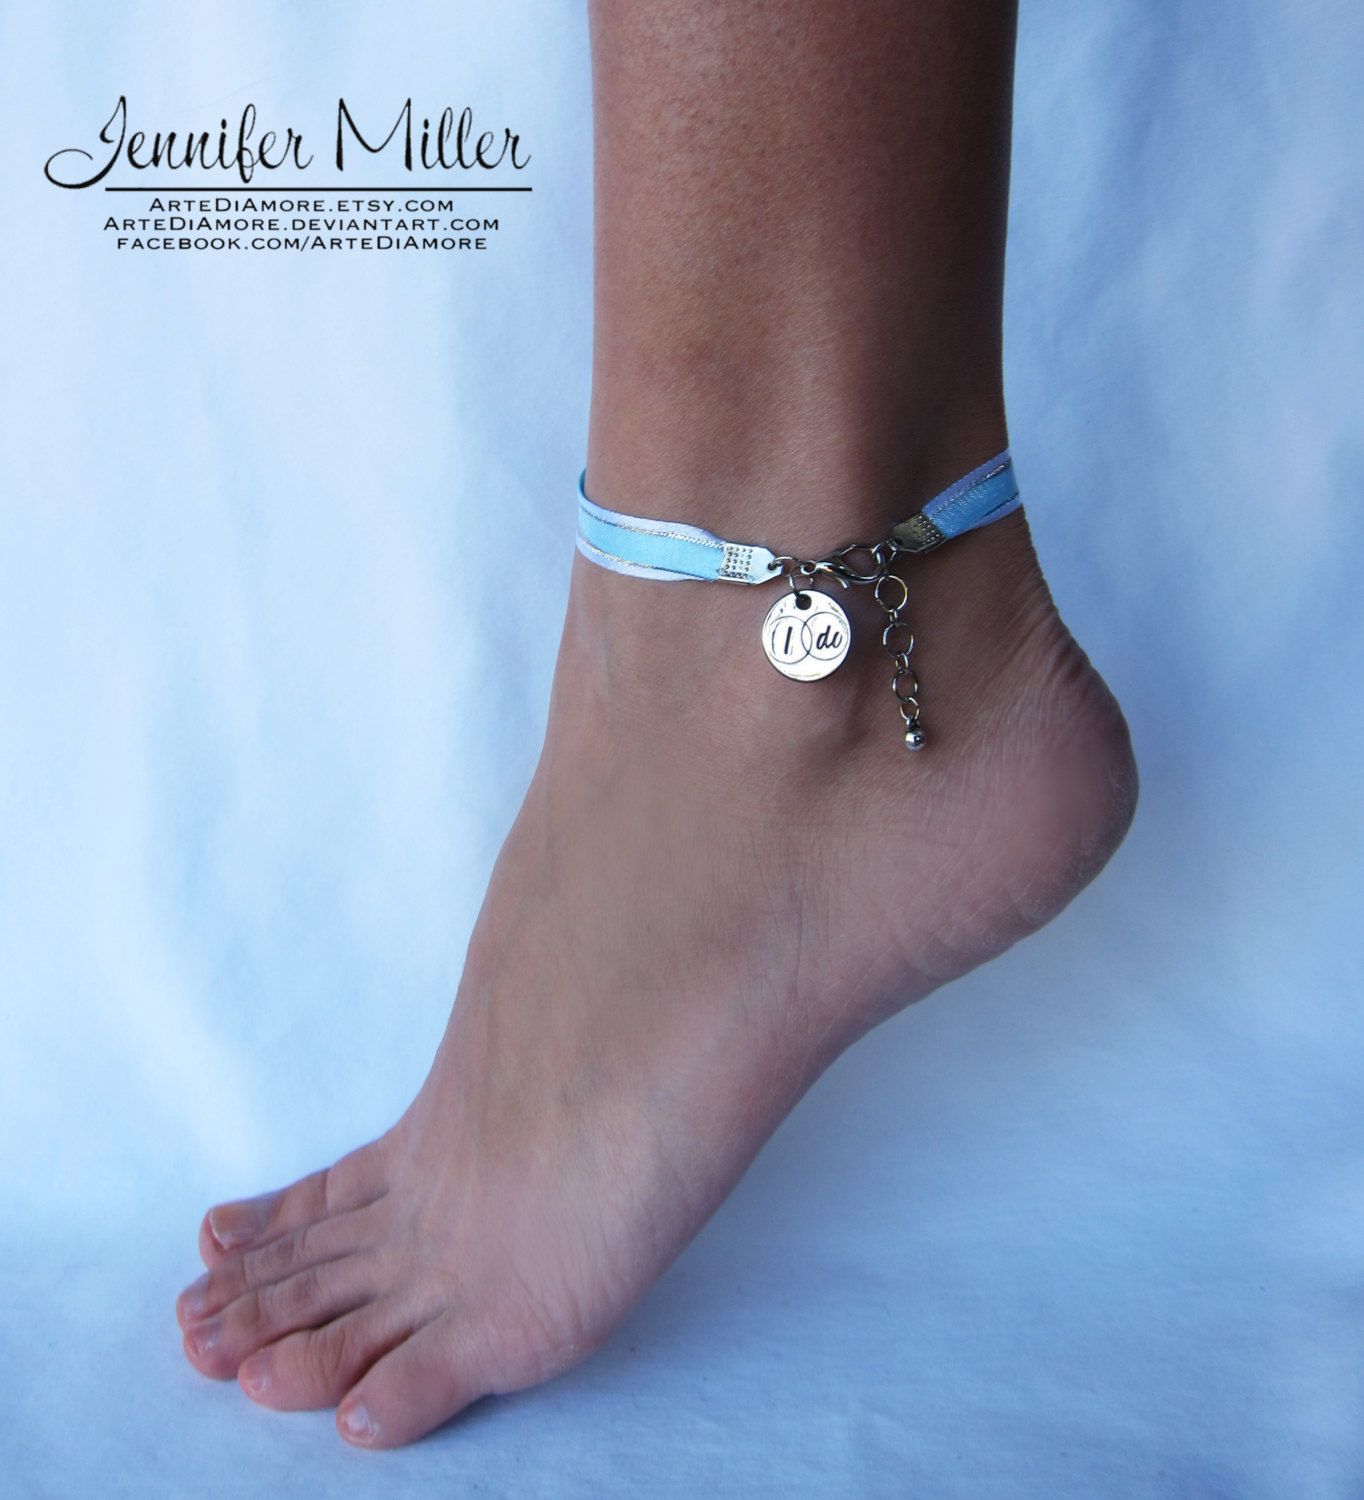 things jewelry foot pin anklets anklet rhinestone toe ring cross wedding